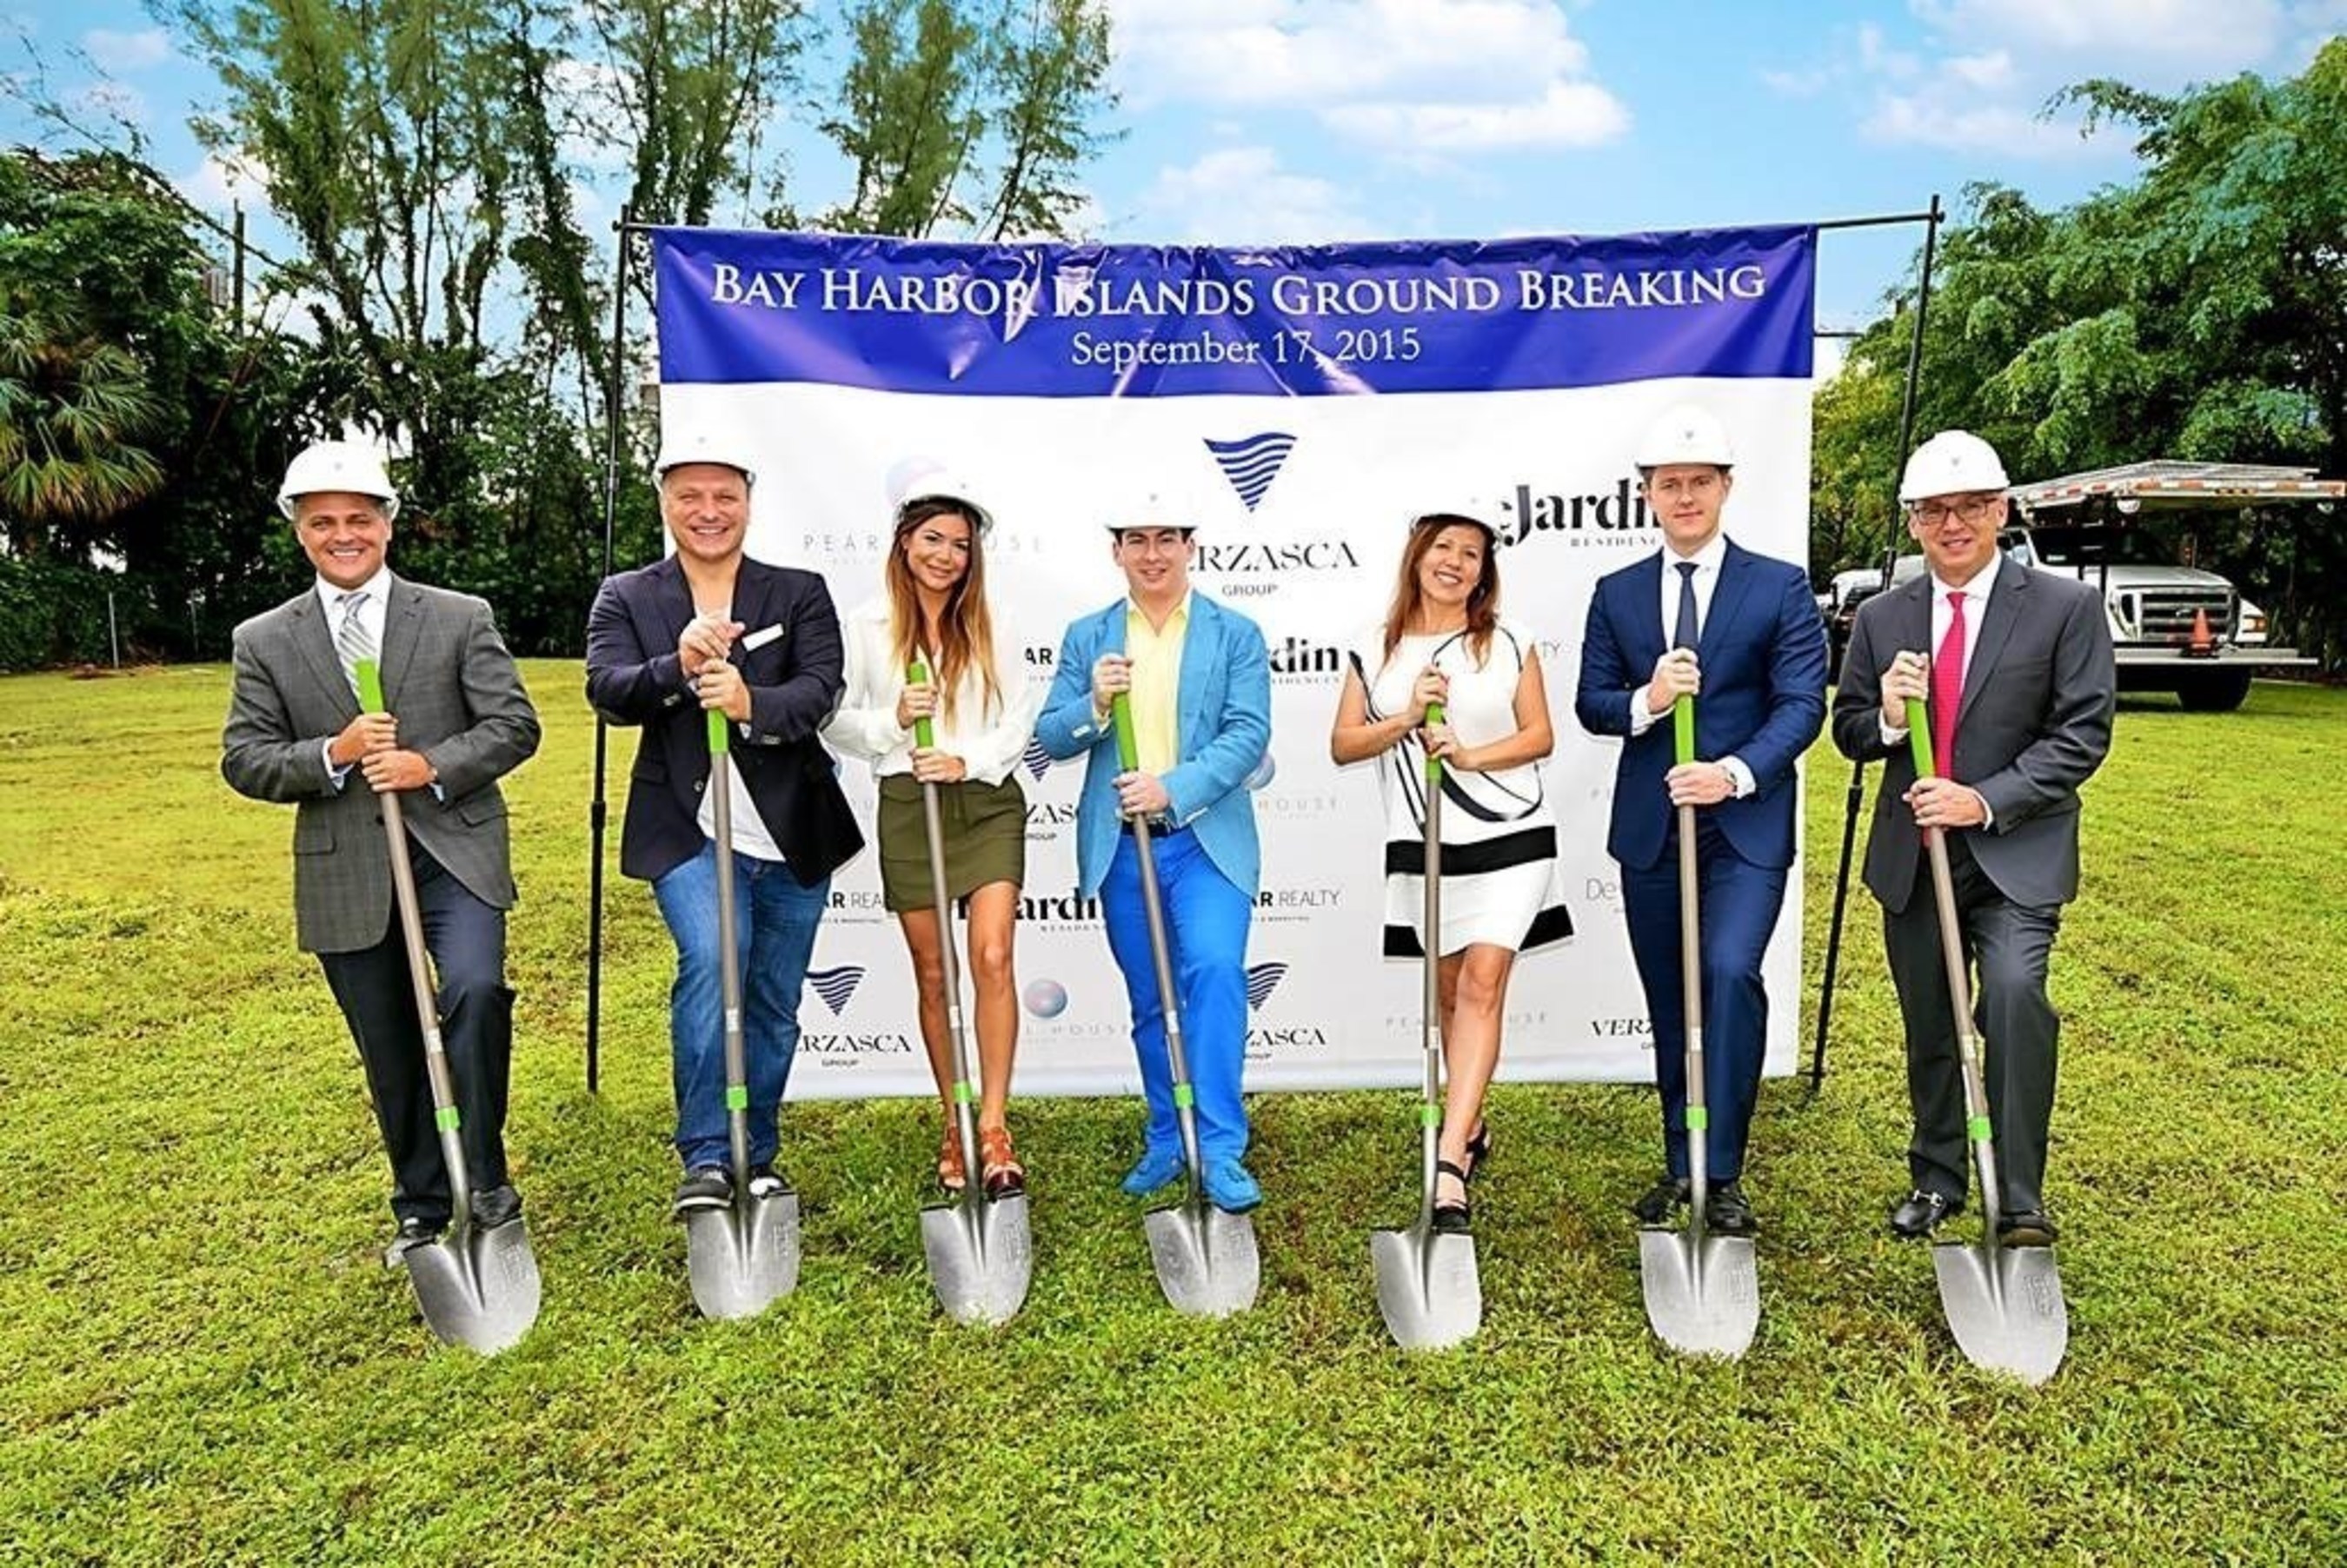 South Florida Real Estate Developer, Verzasca Group, Breaks Ground on Le Jardin Residences and Pearl House Projects in Bay Harbor Islands